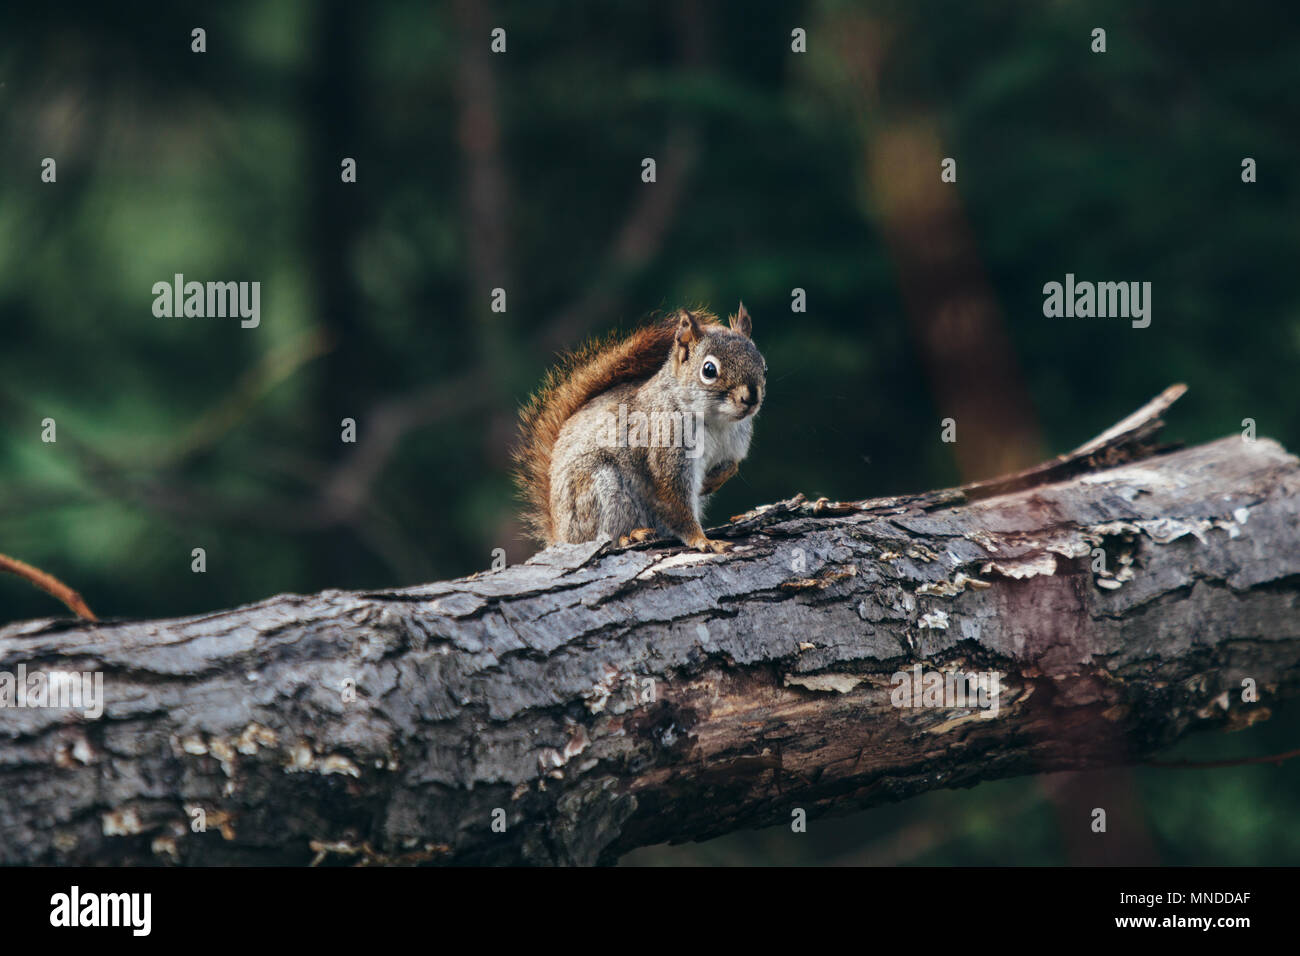 Red squirrel on a tree log Stock Photo